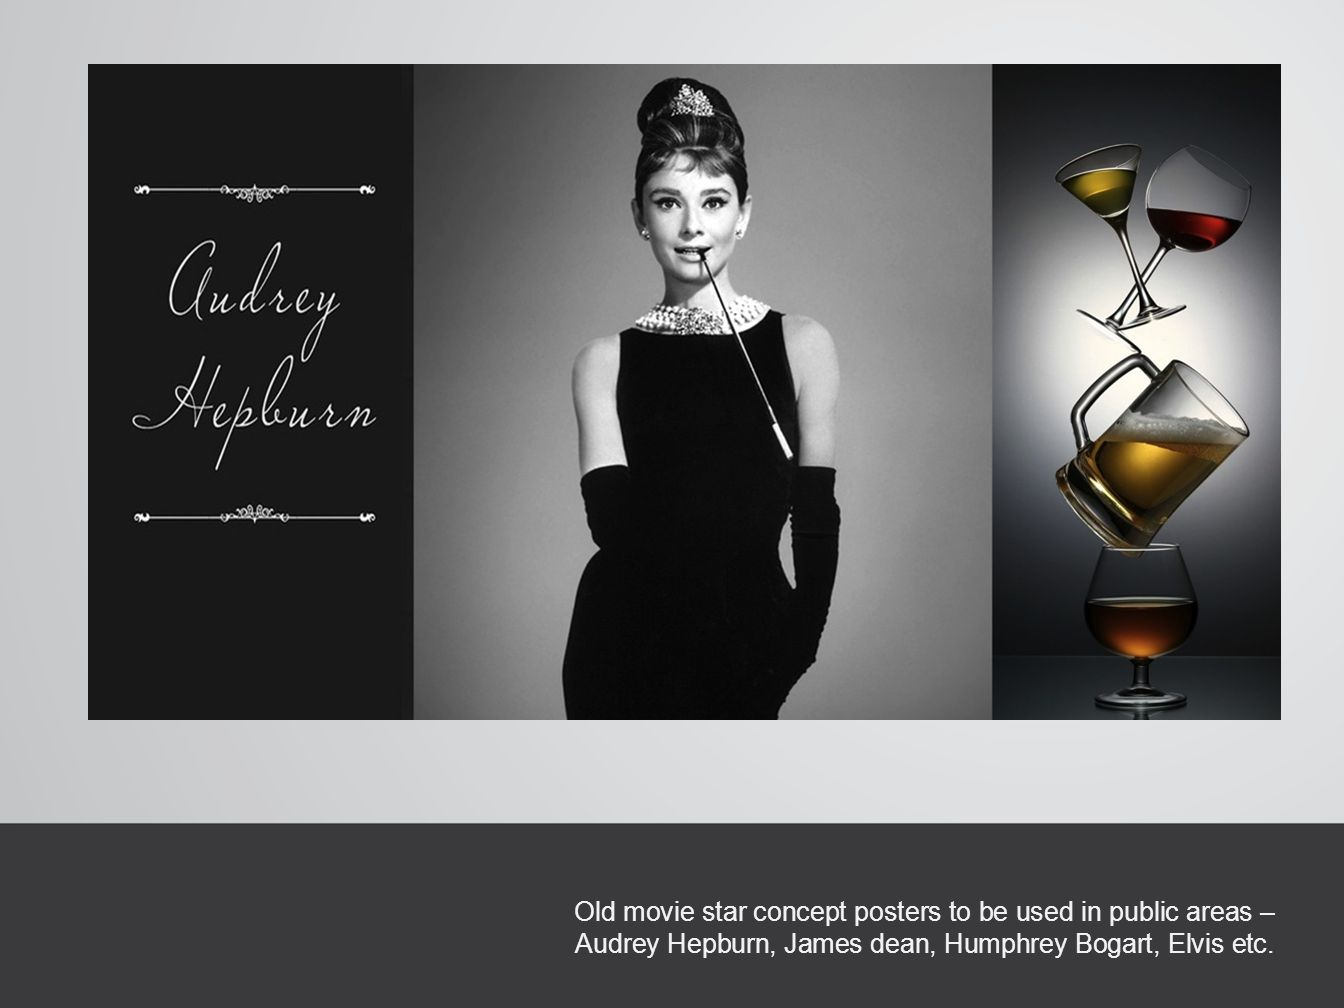 Old movie star concept posters to be used in public areas – Audrey Hepburn, James dean, Humphrey Bogart, Elvis etc.